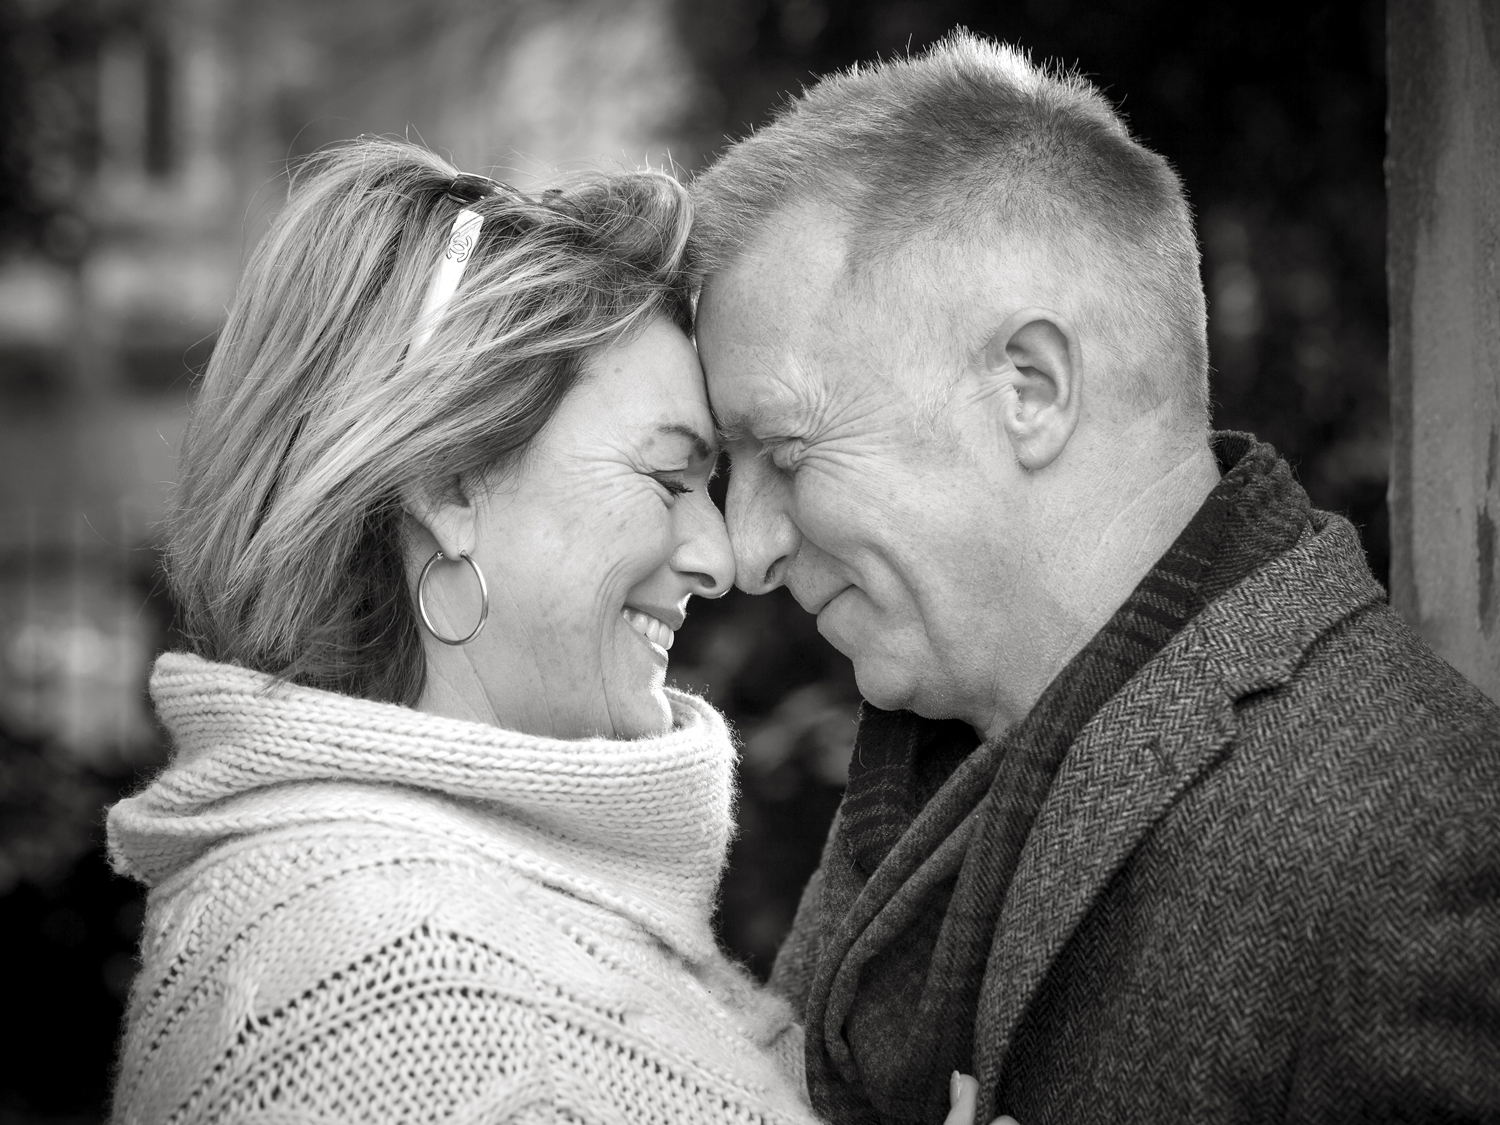 family photographer bournemouth dorset out door portraits.jpg